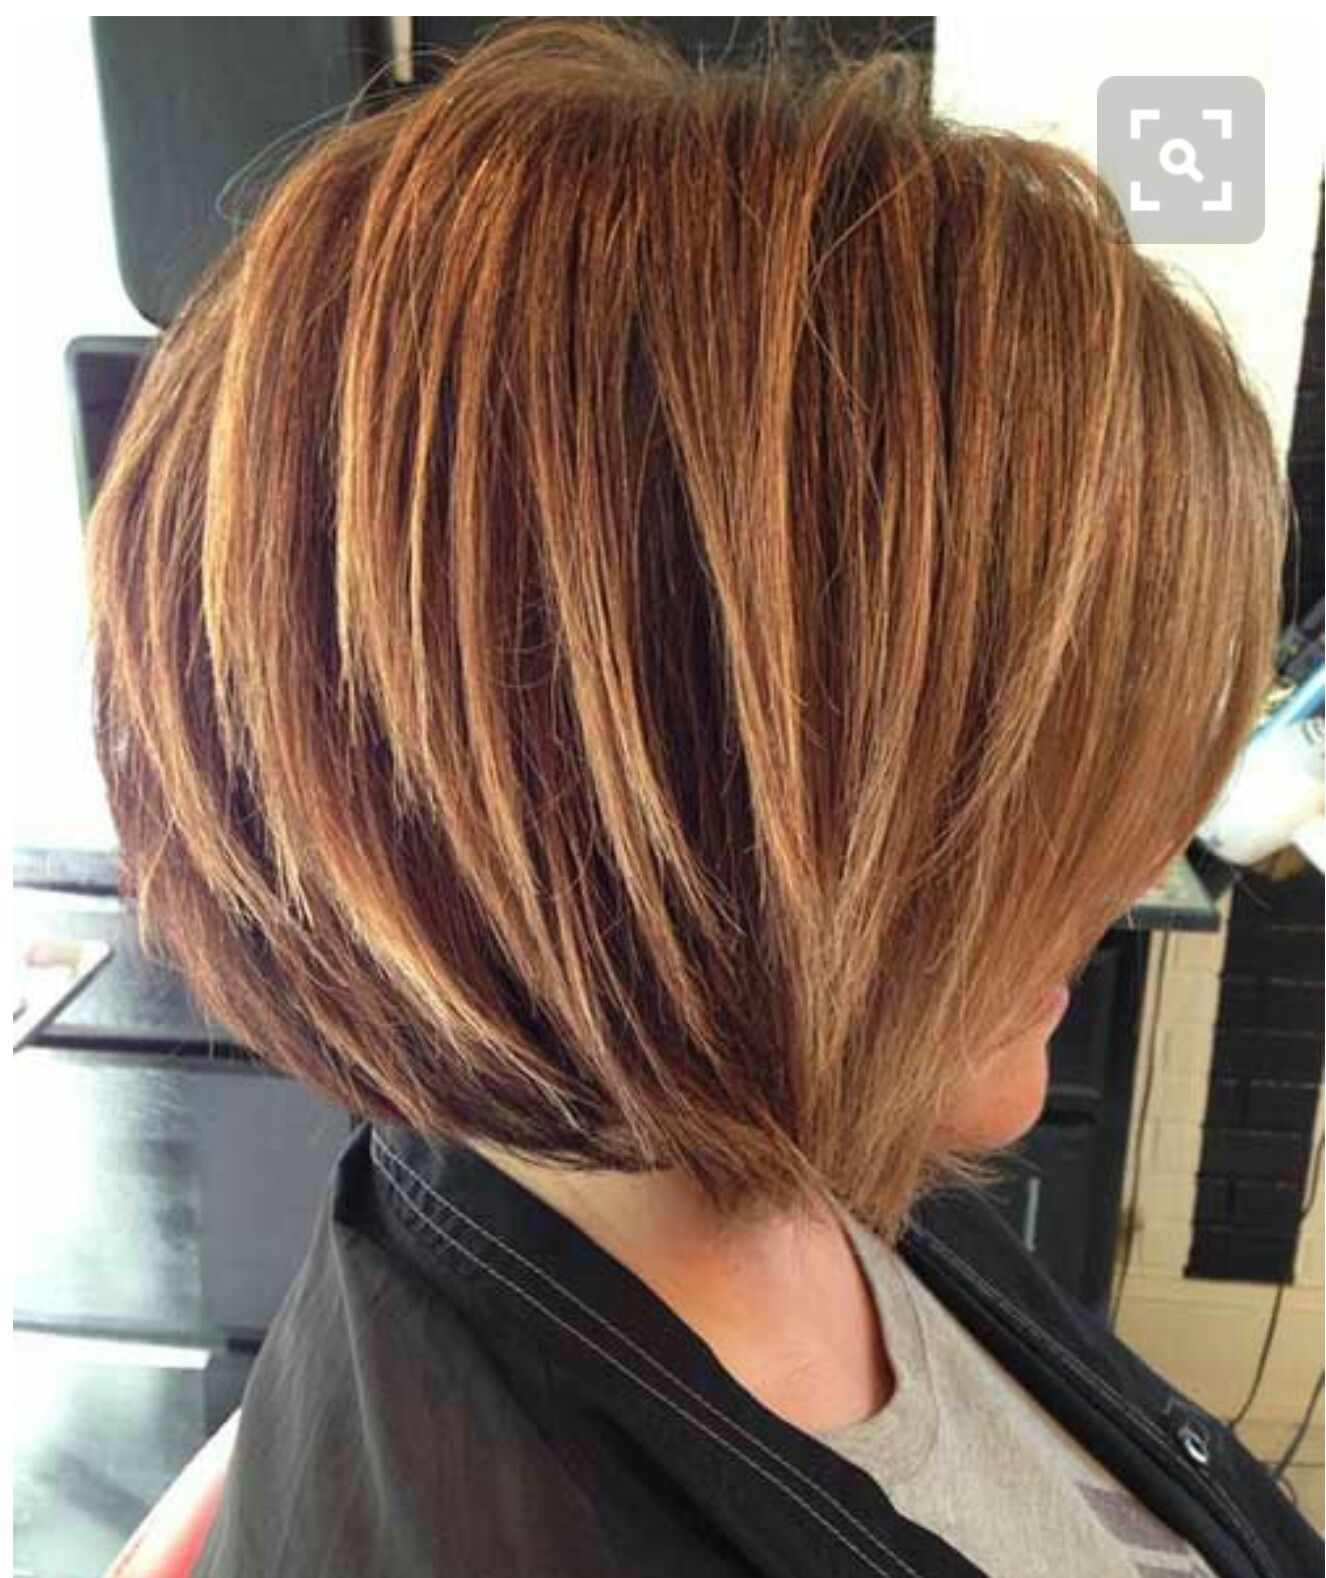 Hairstyles Haircuts Beauteous 99 Best Hair Styles For Over 40 Images On Pinterest  Hair Cut